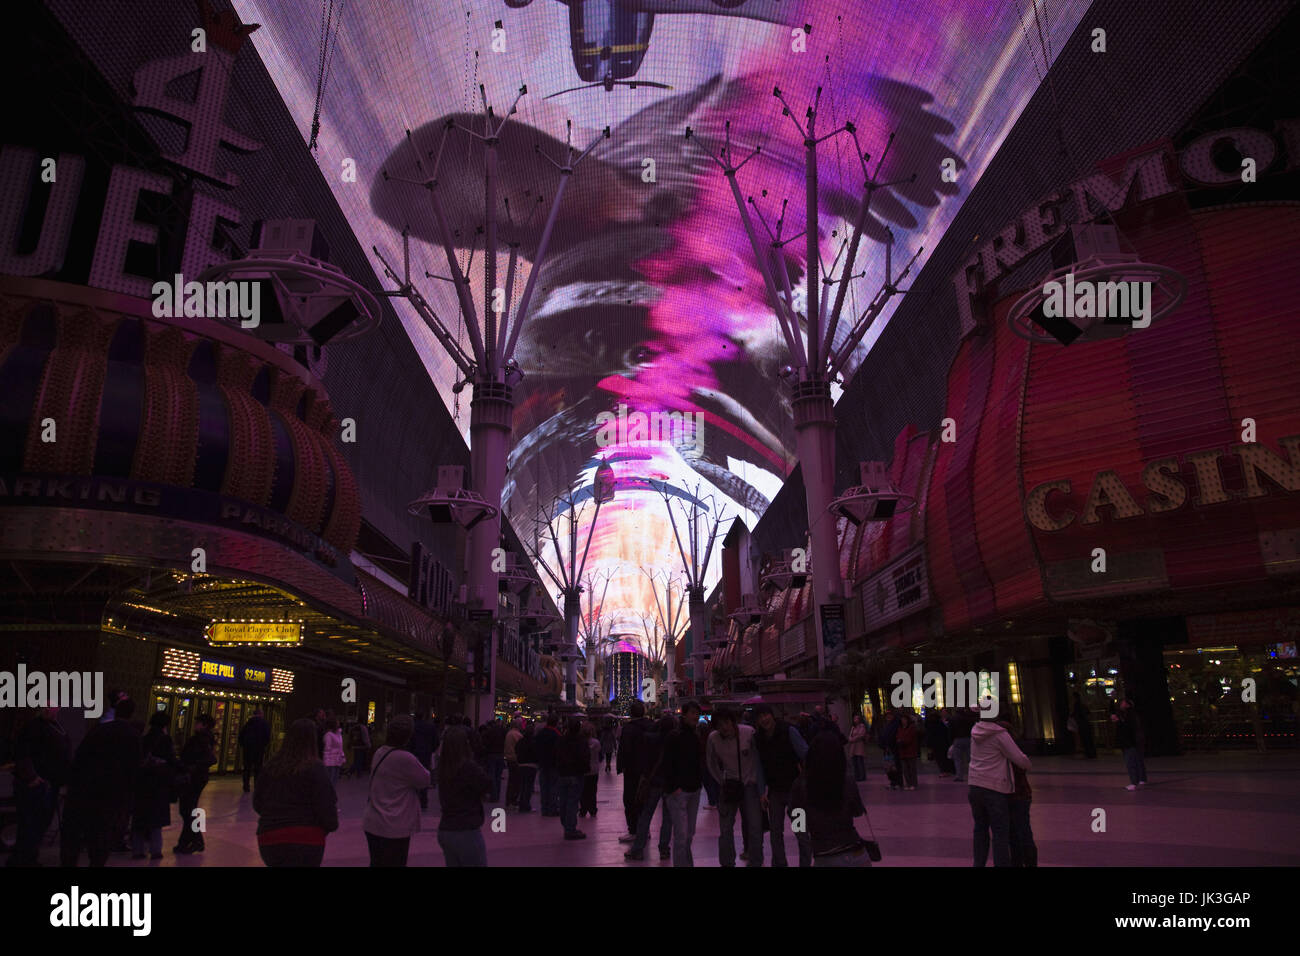 USA, Nevada, Las Vegas, Downtown, Fremont Street Experience, audio visual extravaganza projected on street canopy - Stock Image